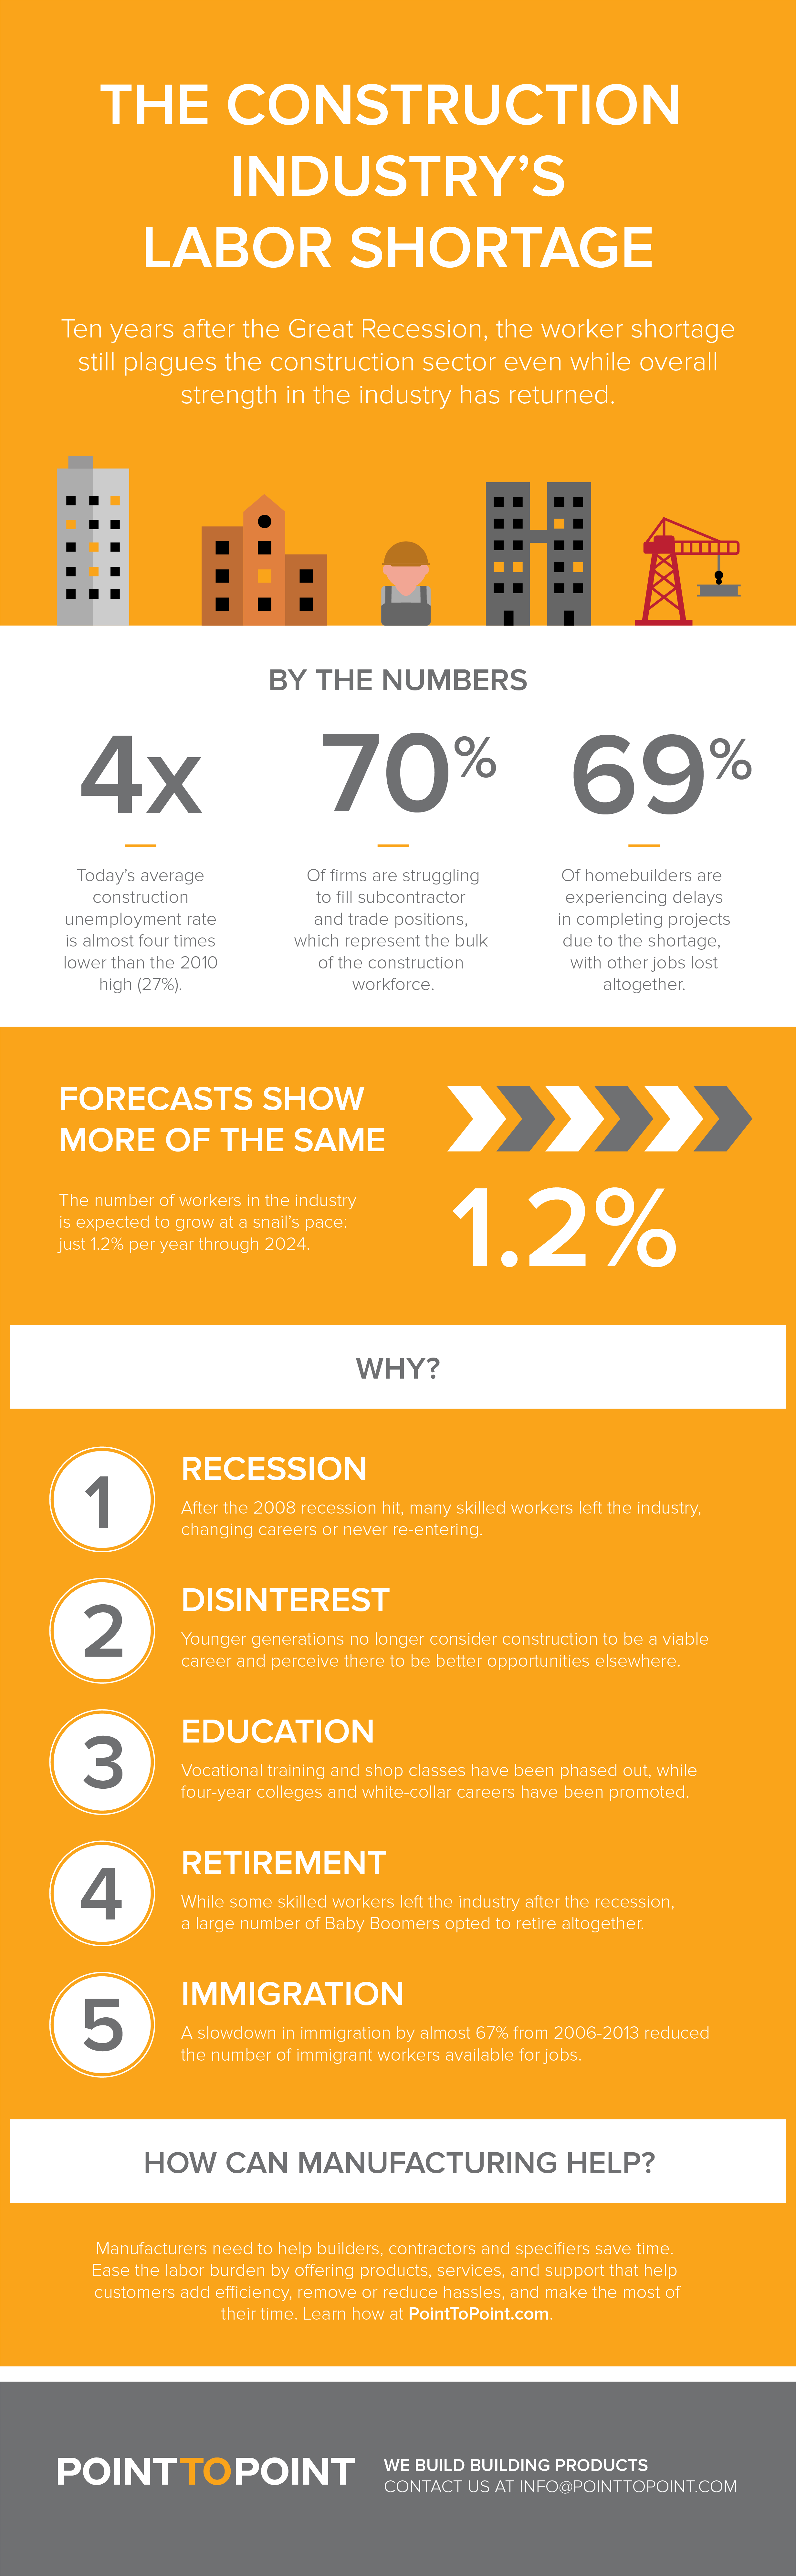 Construction Industry Labor Shortage Infographic